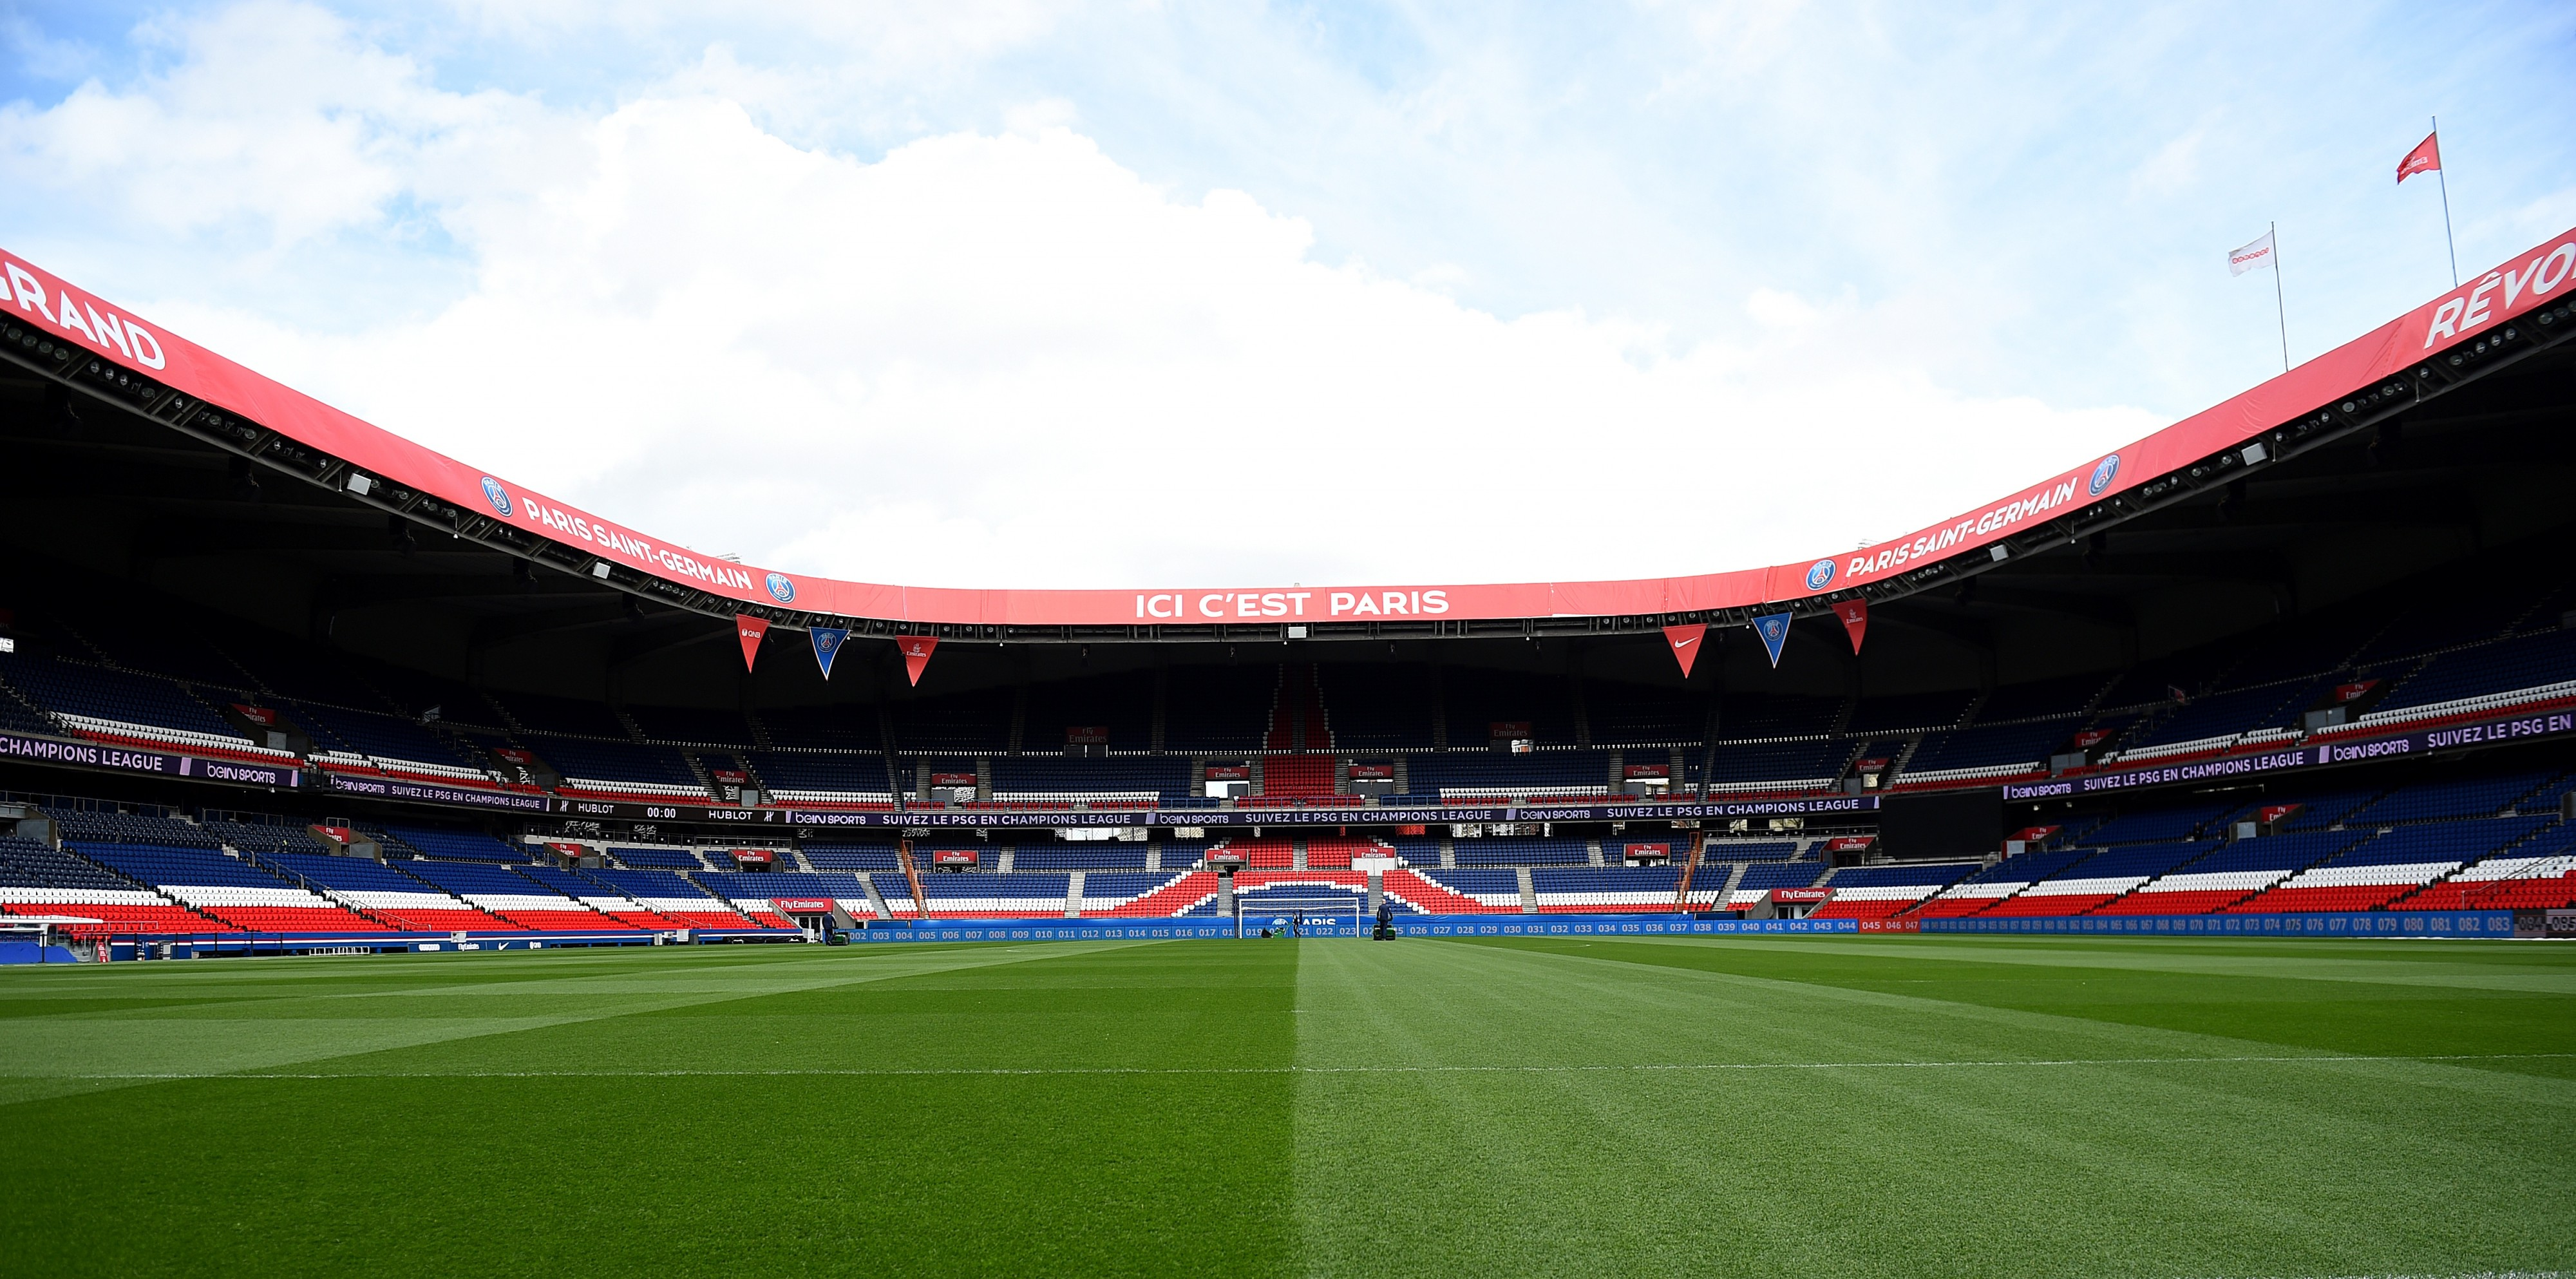 FILES-FBL-EURO-2016-STADIUM-PARIS-PARC DES PRINCES